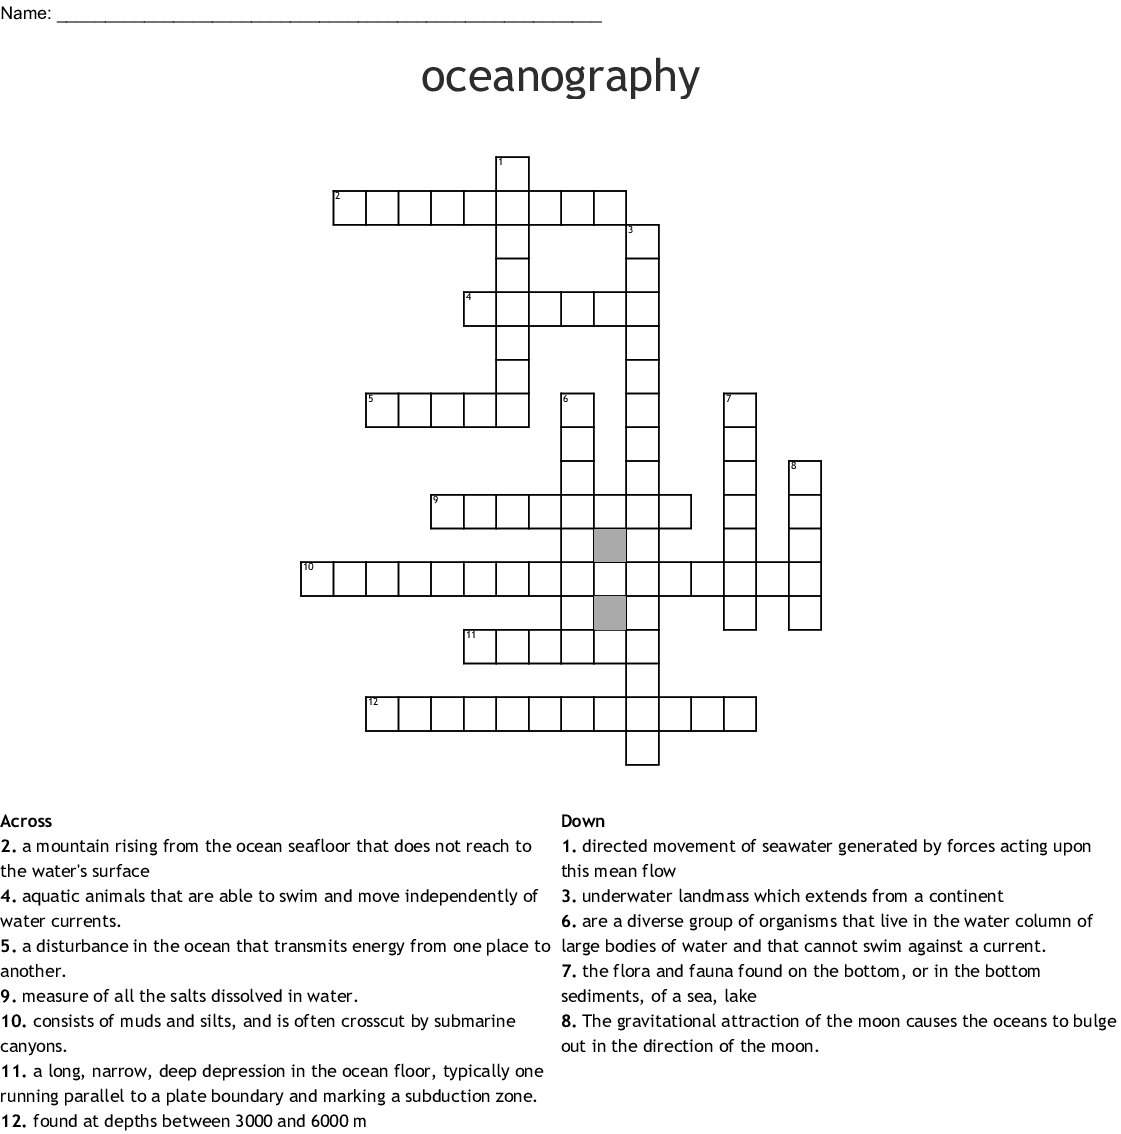 Oceanography Crossword